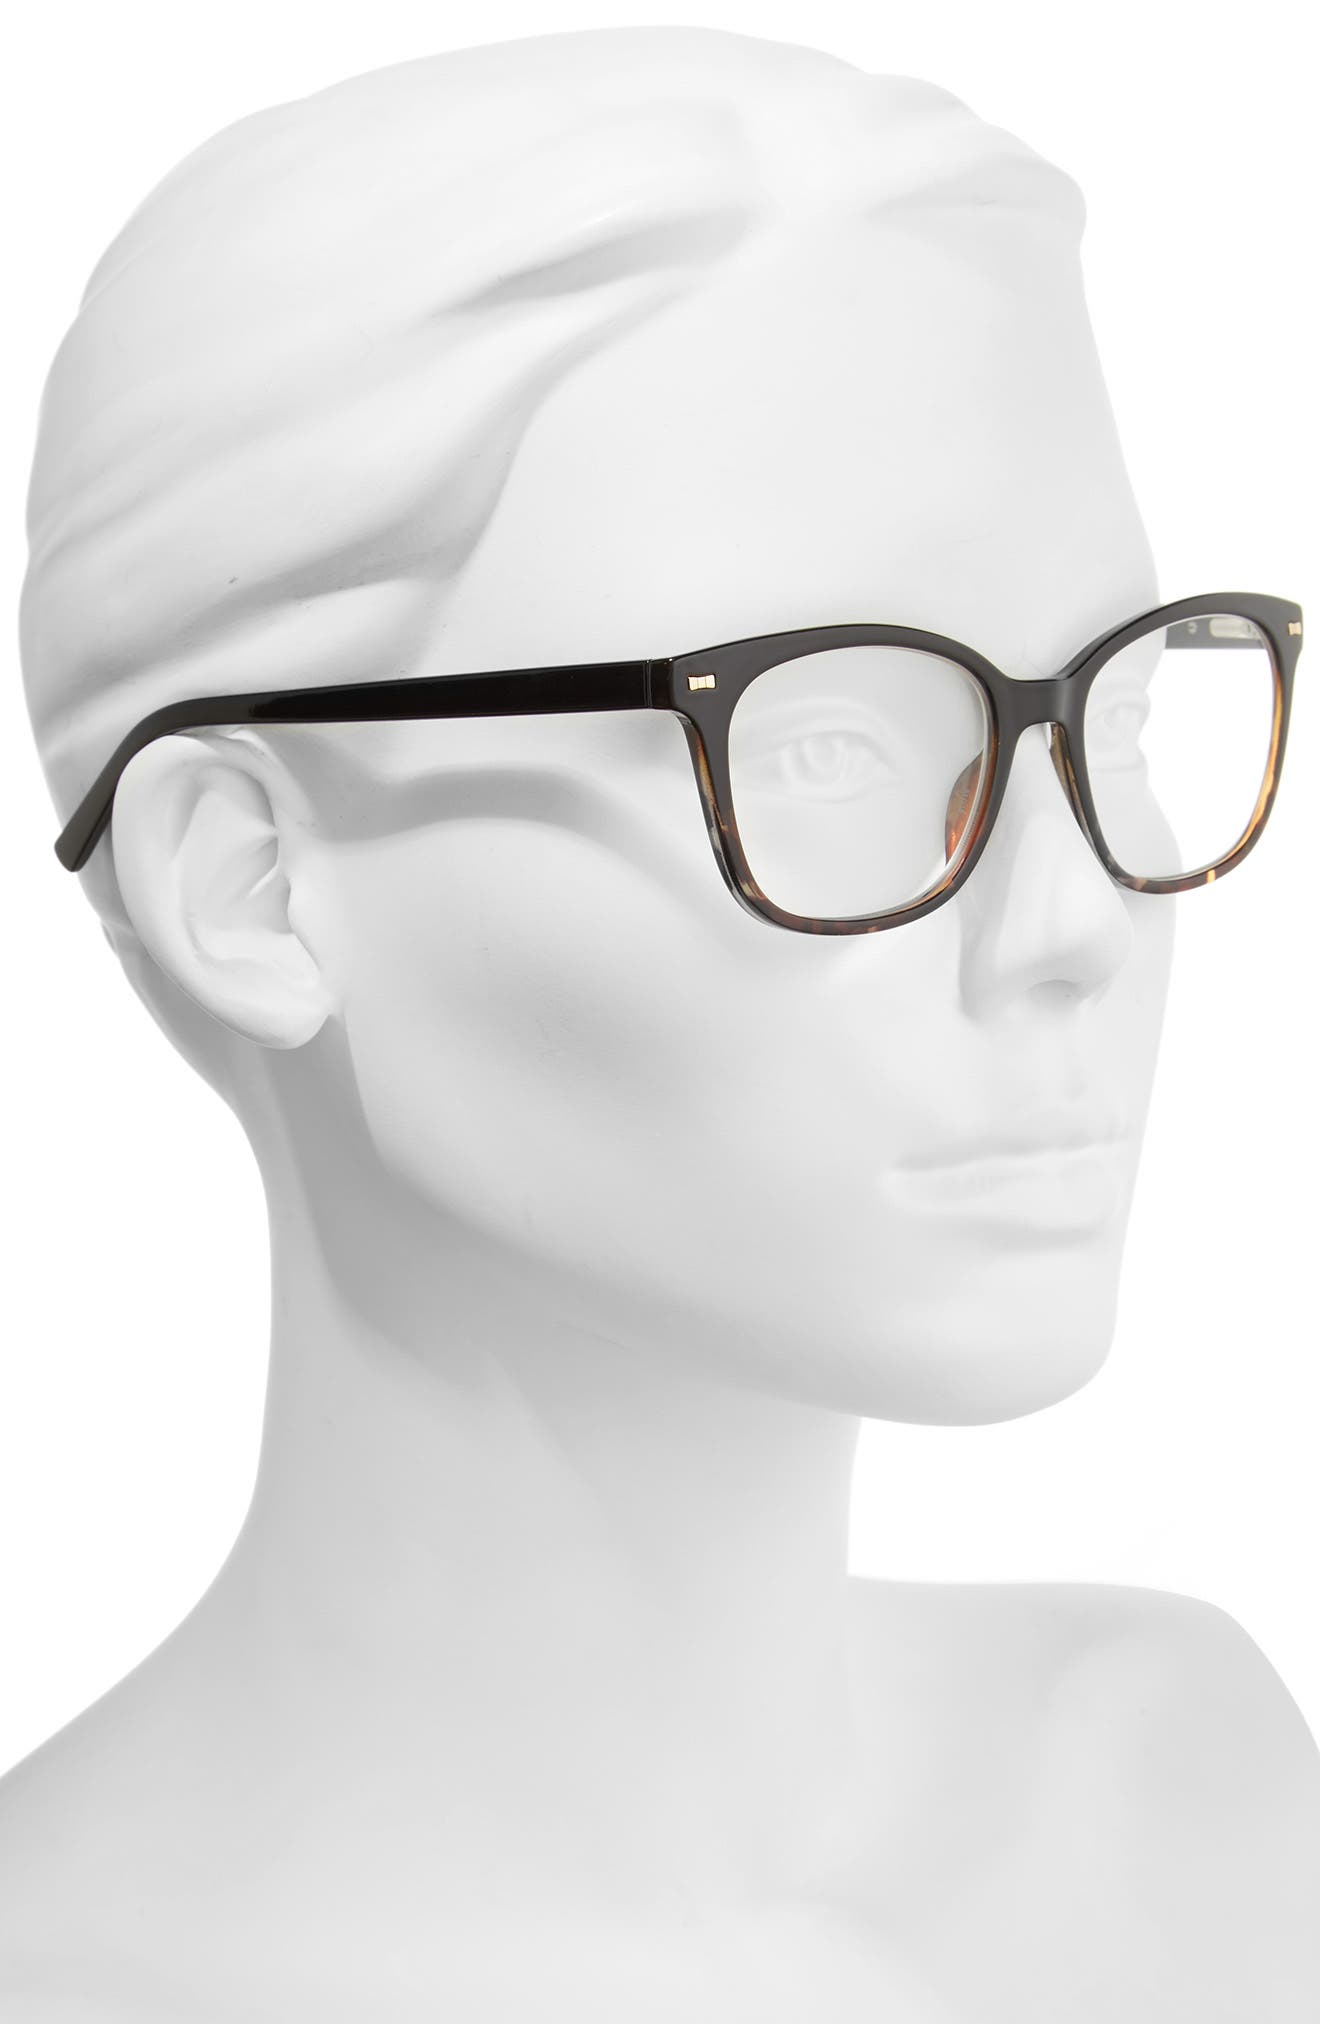 keadra 51mm reading glasses,                             Alternate thumbnail 2, color,                             BLACK HAVANA